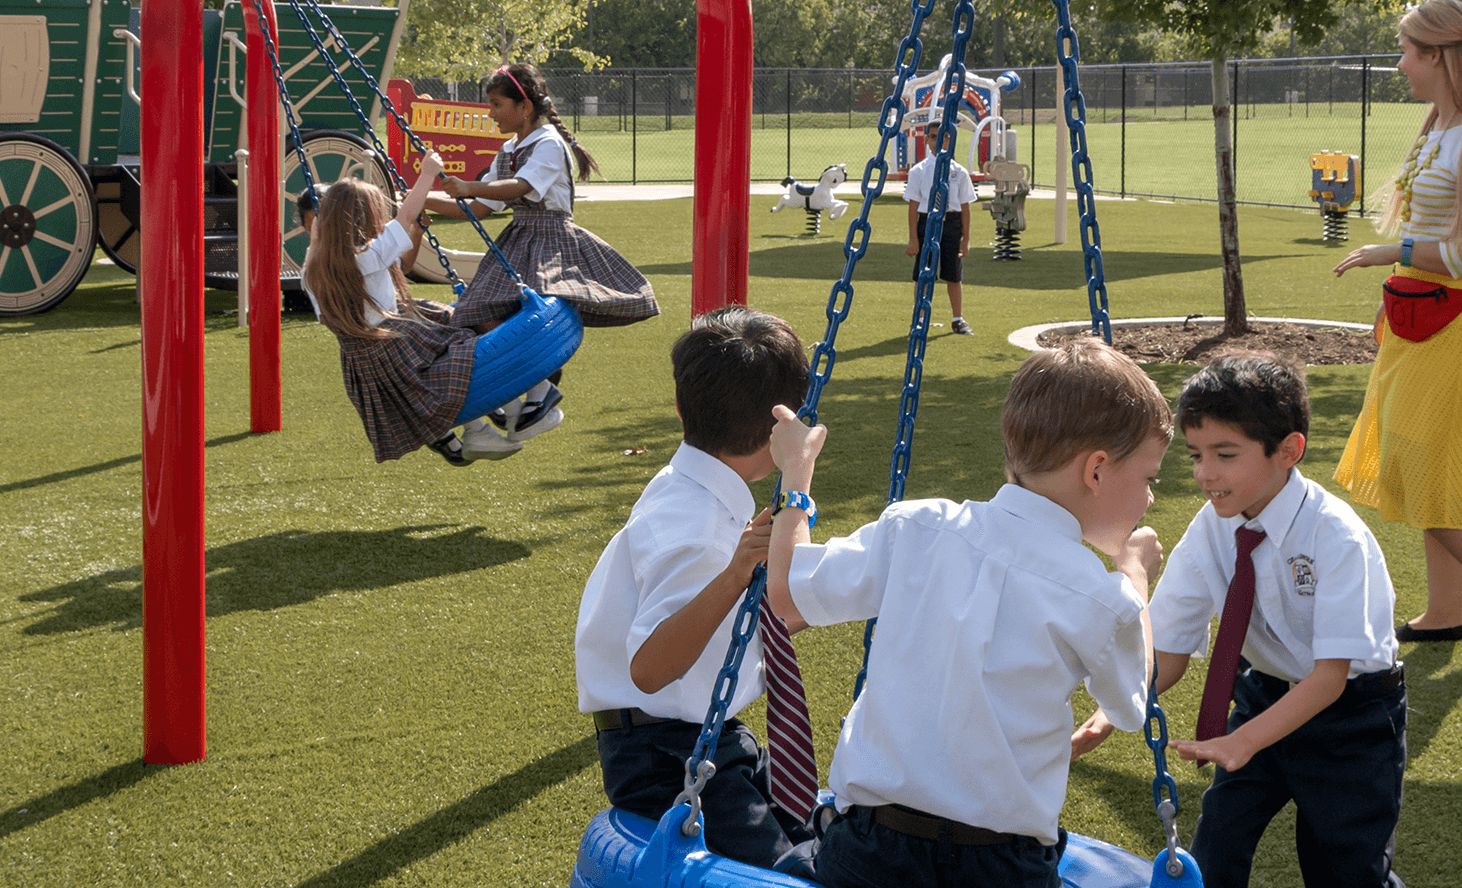 Playground | Challenger School - Pond Springs | Private School In Austin, Texas